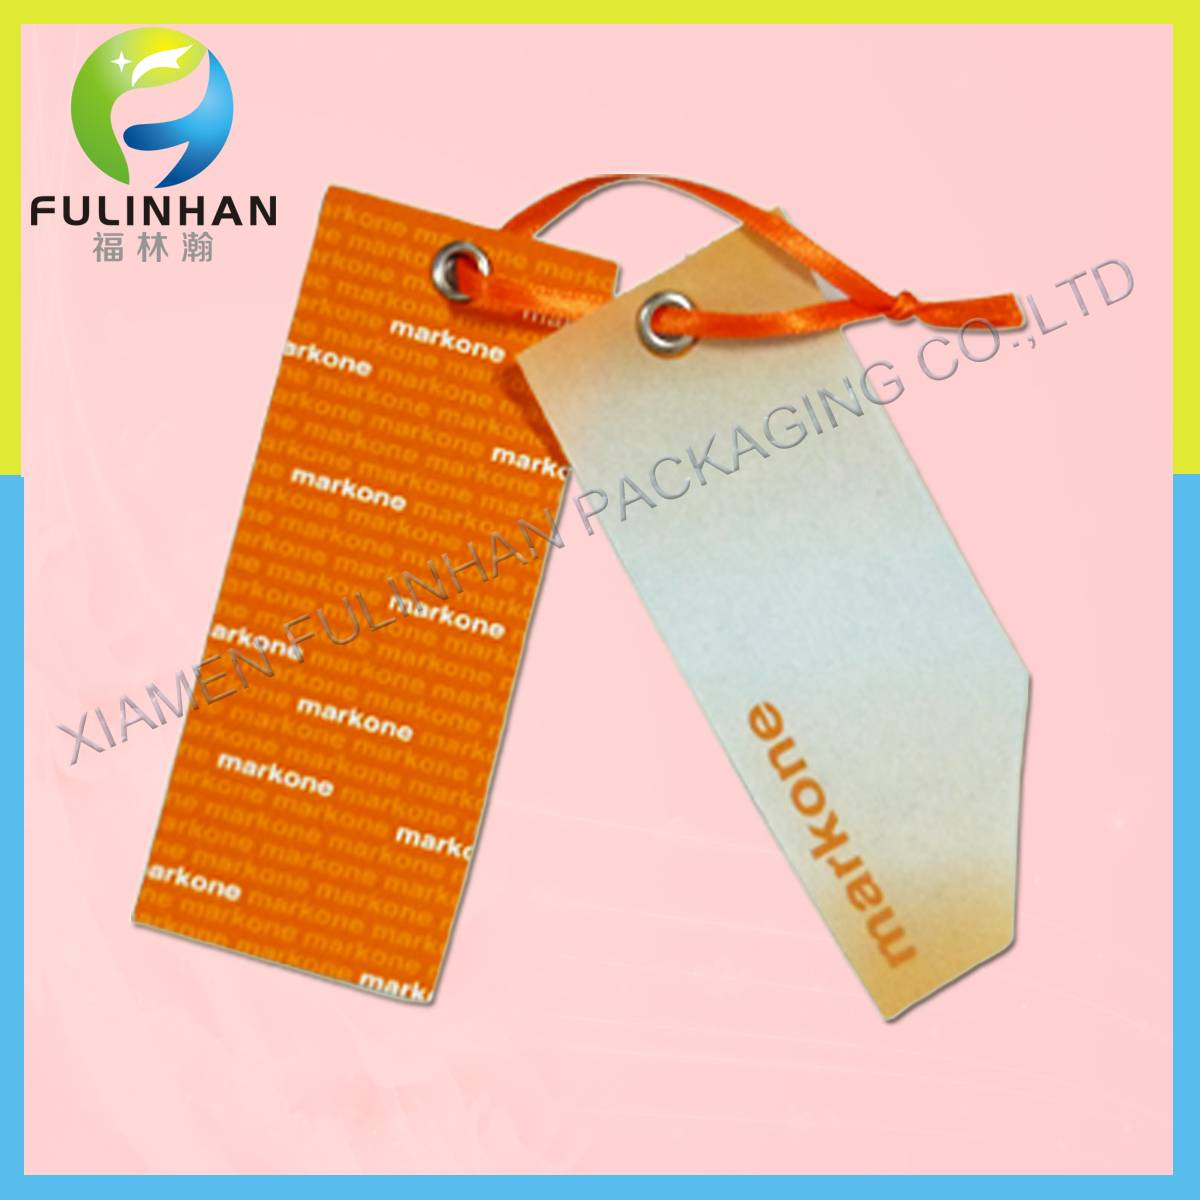 Composed Paper Hangtags for garments